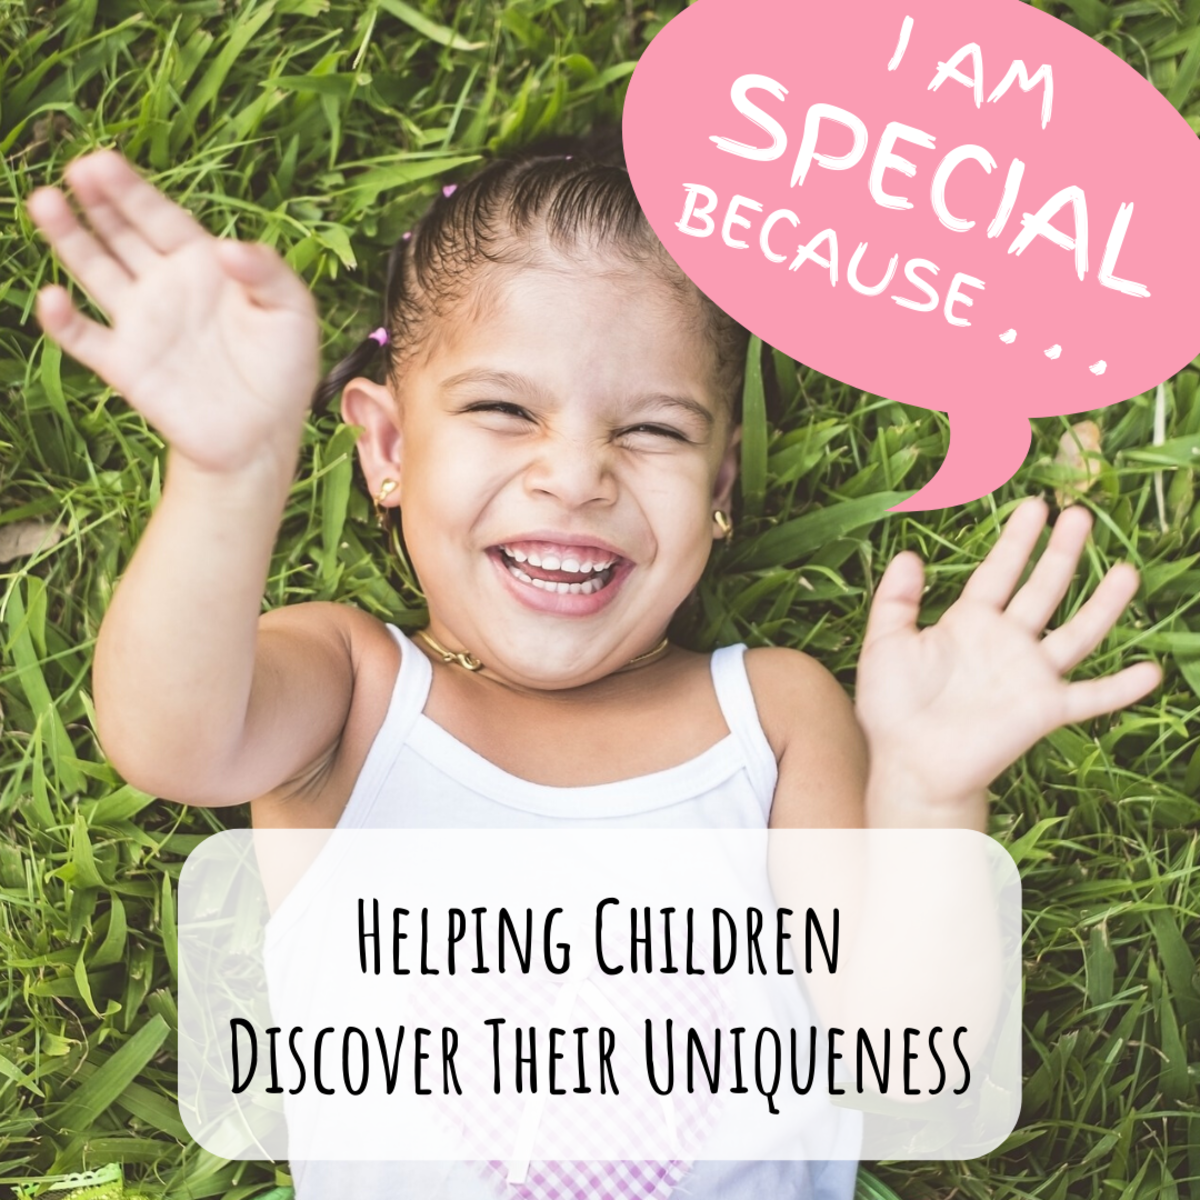 What Makes a Child Special? Ideas for Celebrating Uniqueness